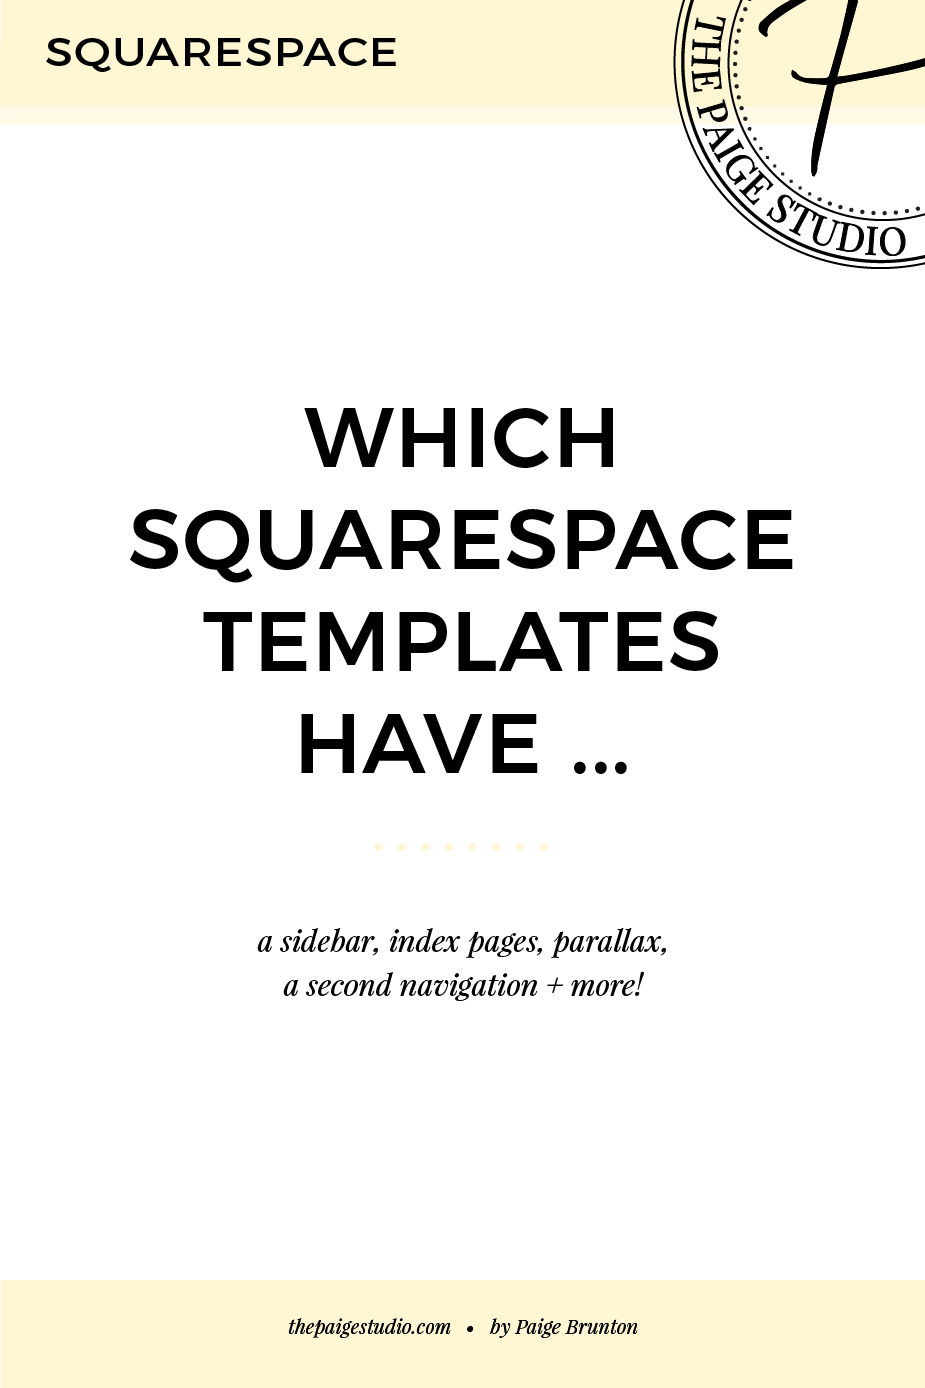 Which Squarespace templates have a sidebar, index, parallax, second ...